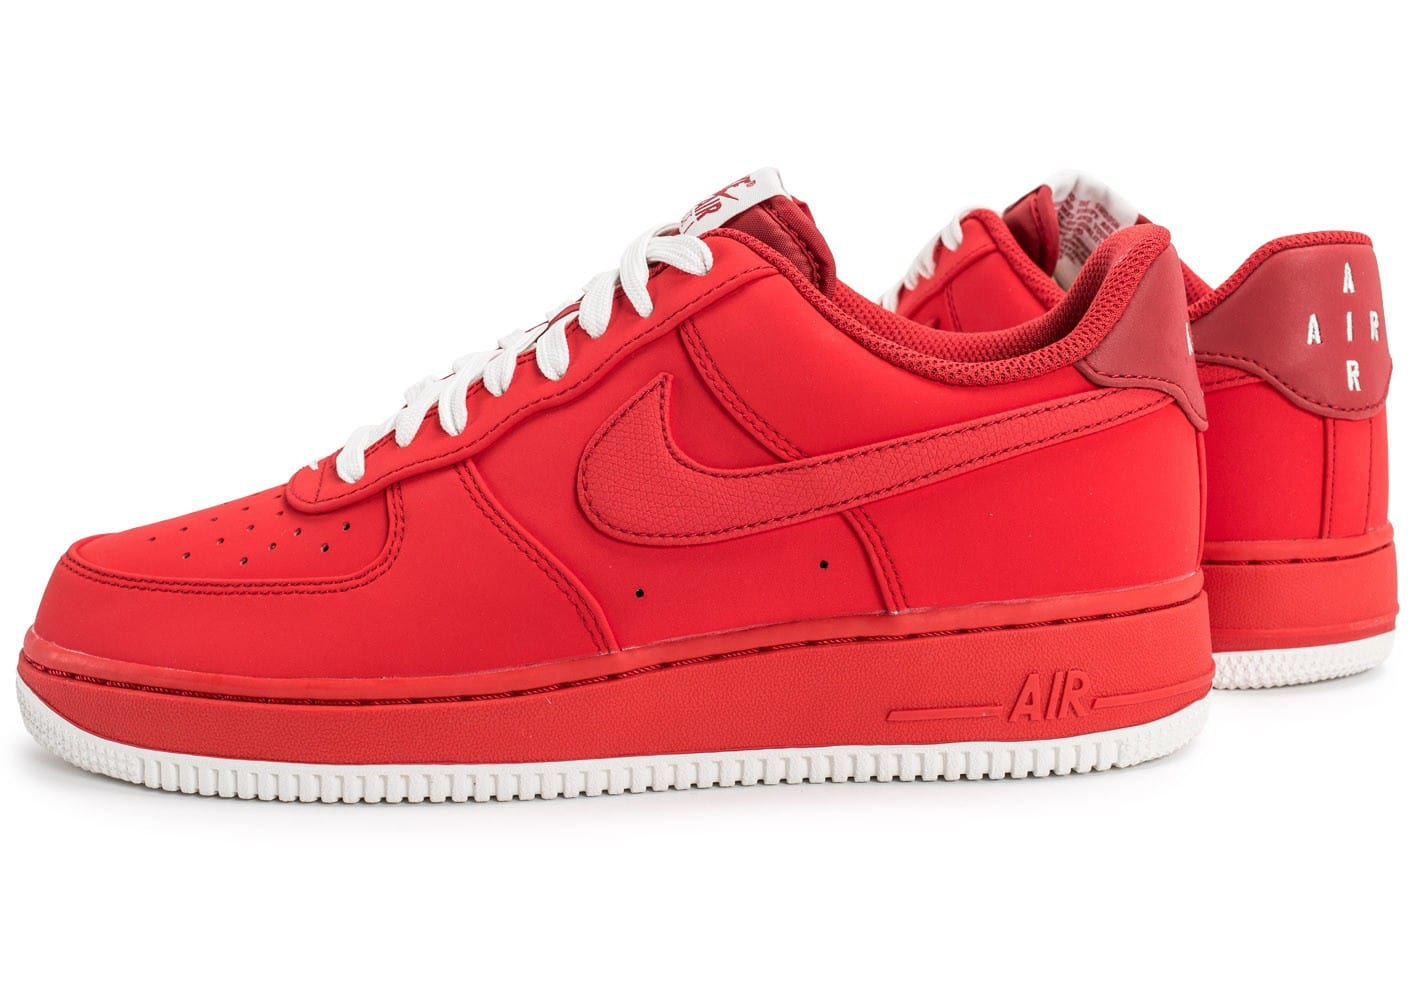 air force 1 toute rouge